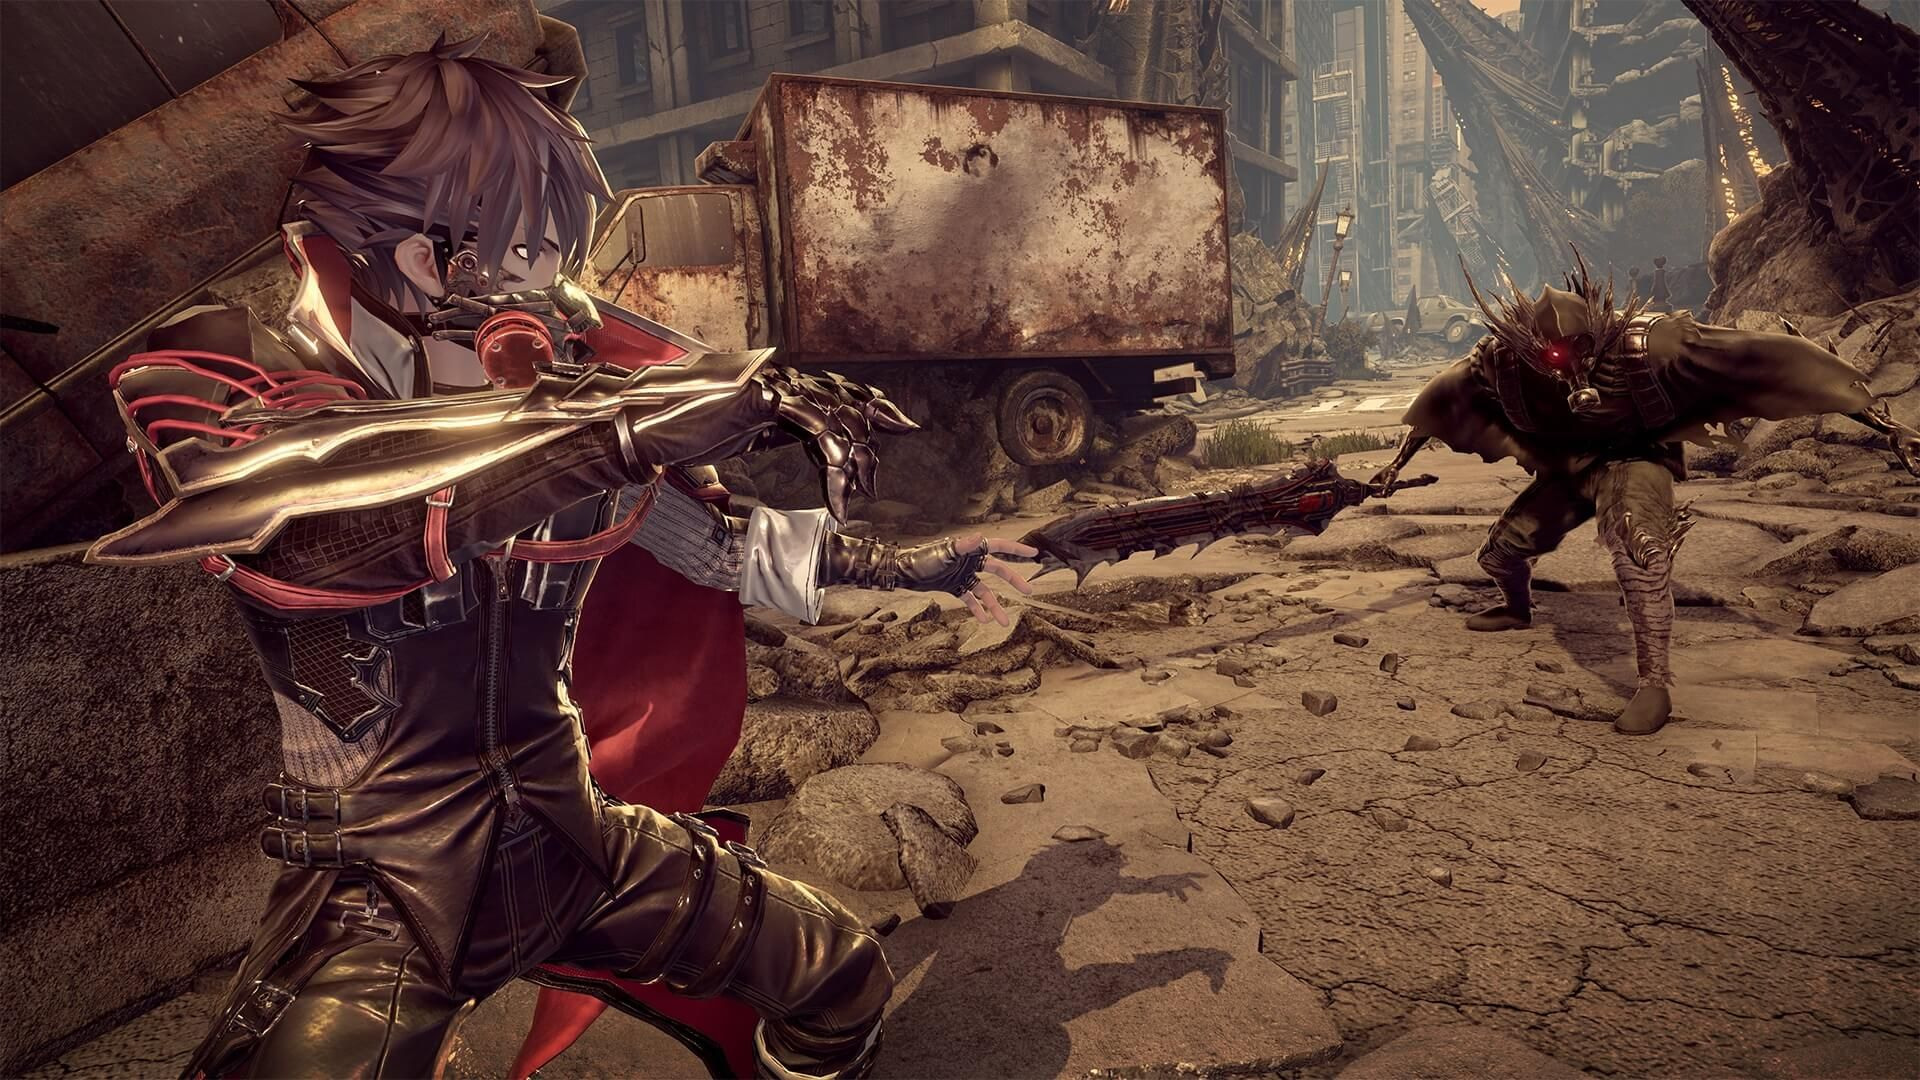 Pin by Games on Code Vein Dark souls, Anime, Coding